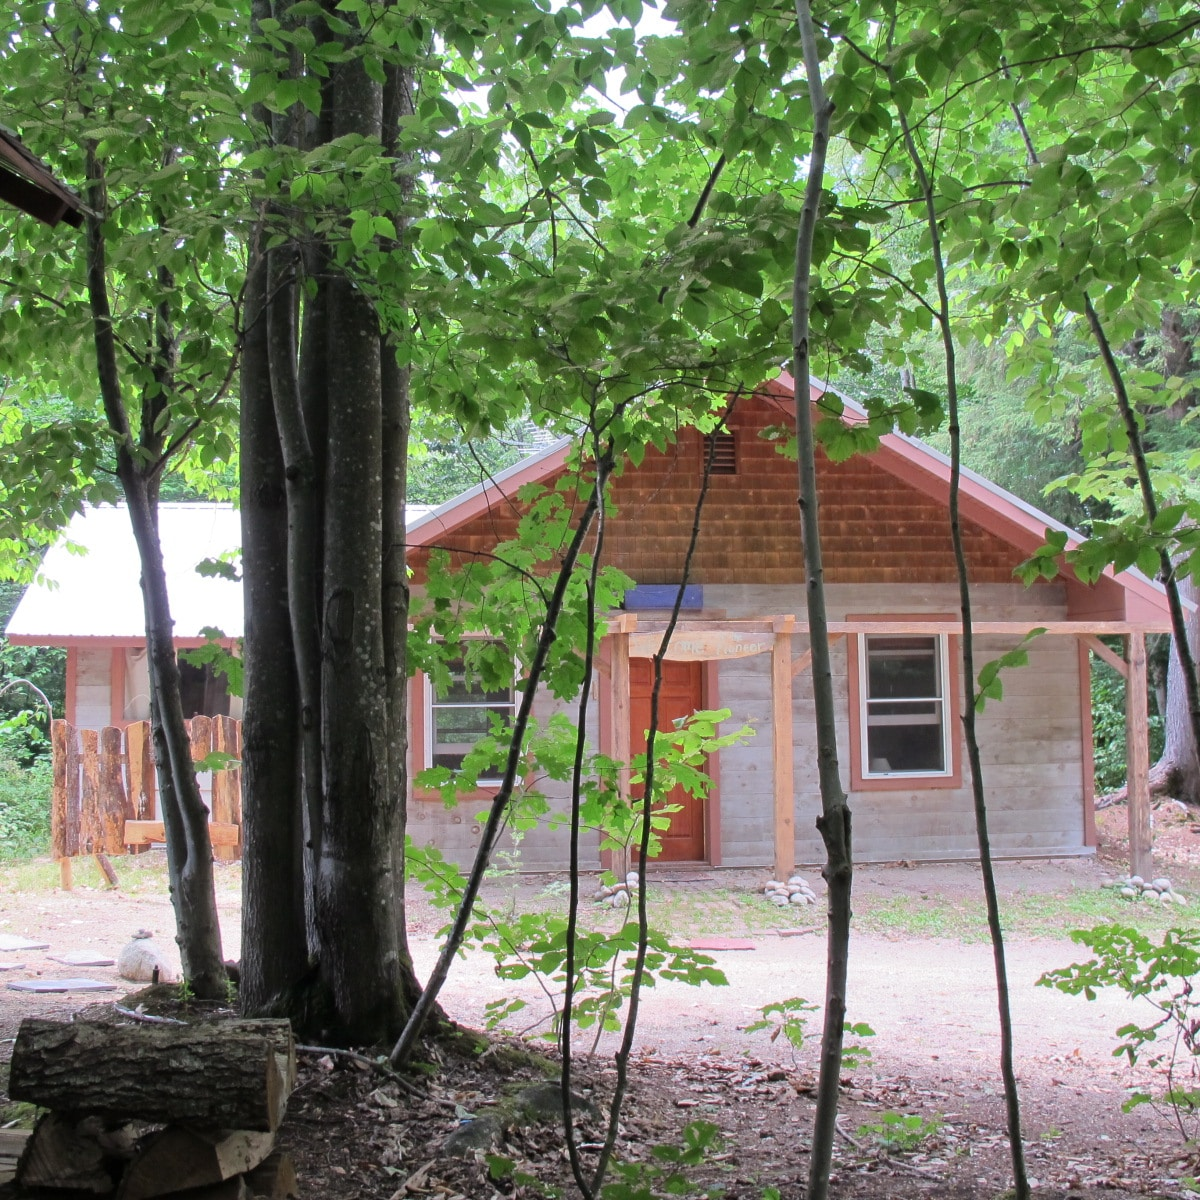 Our biggest eco-cabin complete with solar hot water, full kitchen, shower and indoor composting toilet.